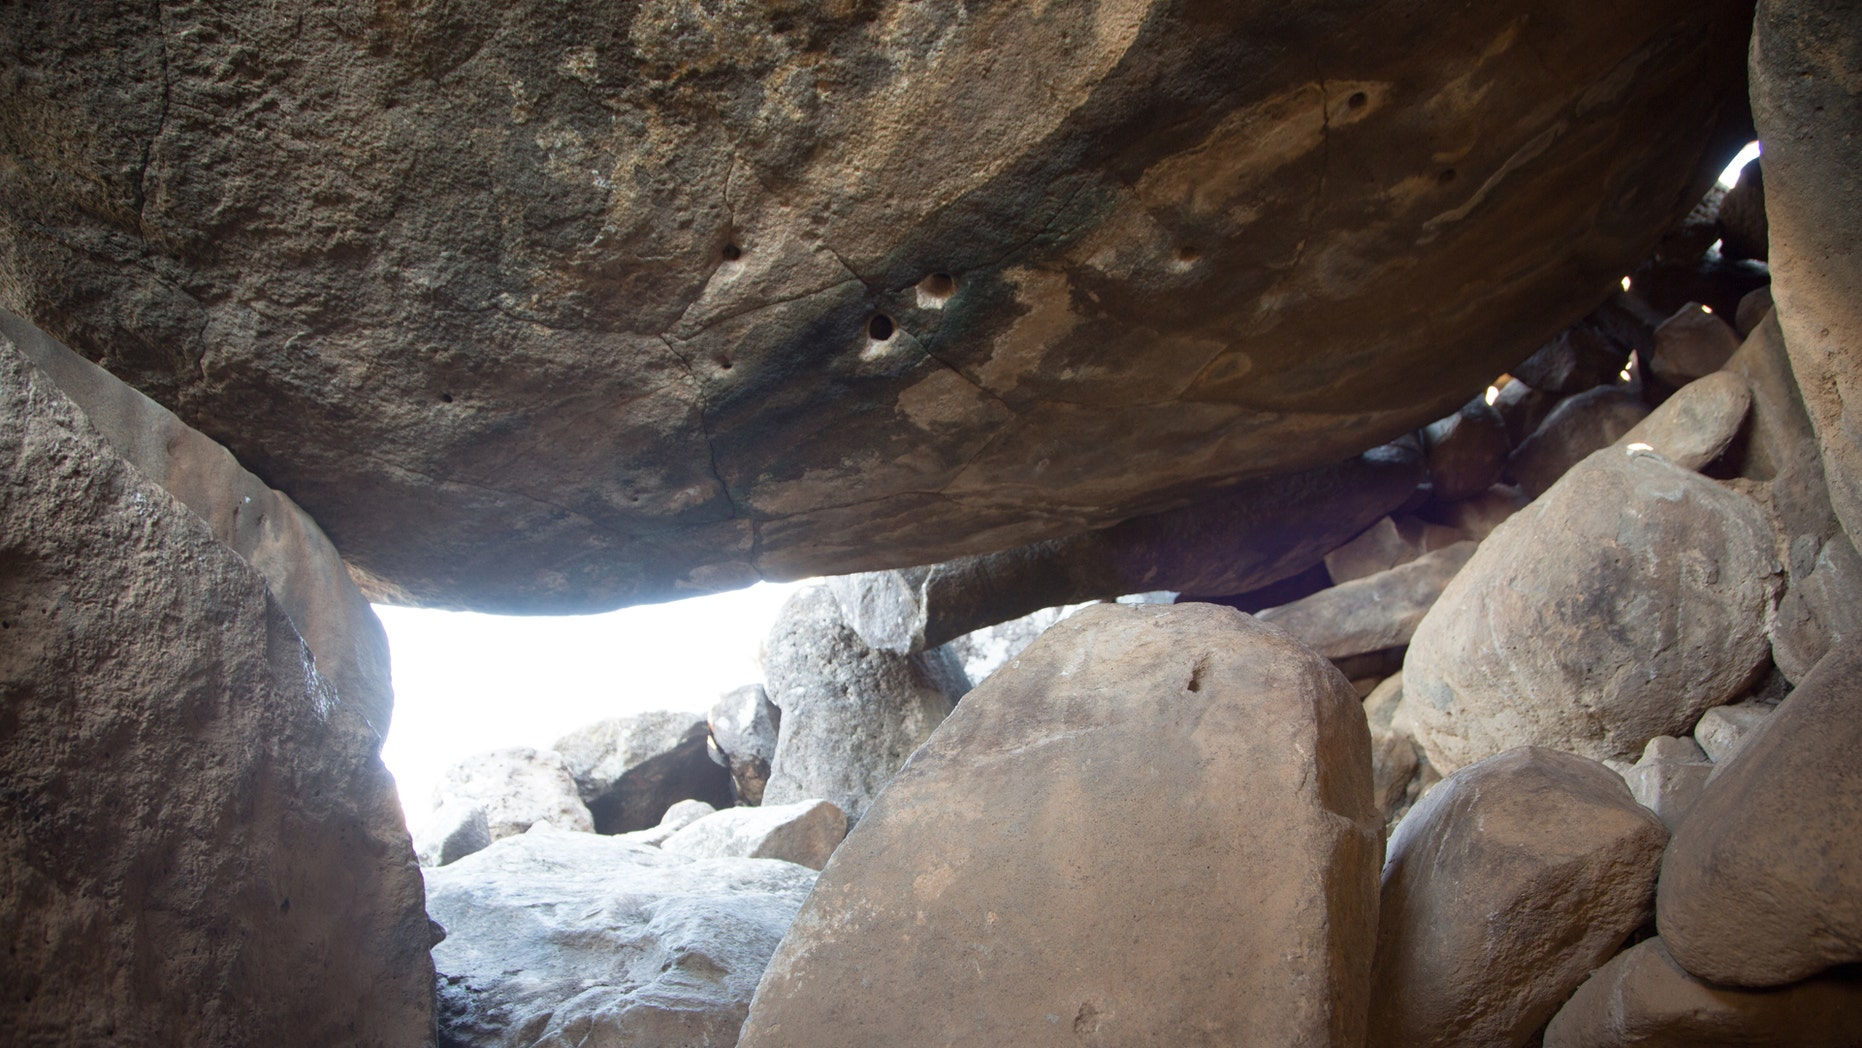 The view from inside the dolmen. (Photographic credit: Shmuel Magal, courtesy of the Israel Antiquities Authority)